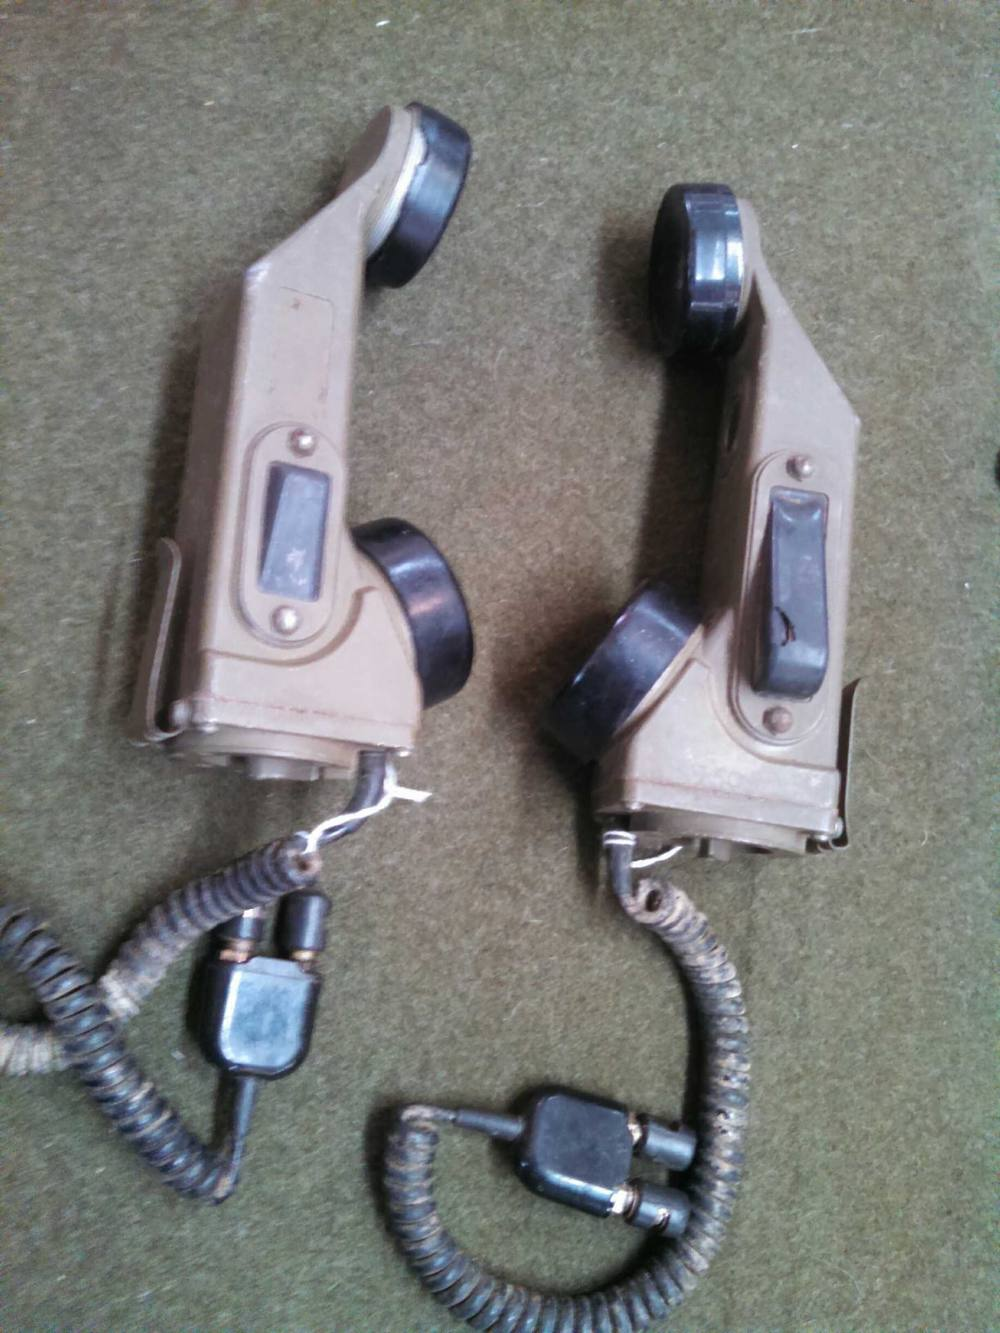 Vietnam Era Walkie Talkies.JPG